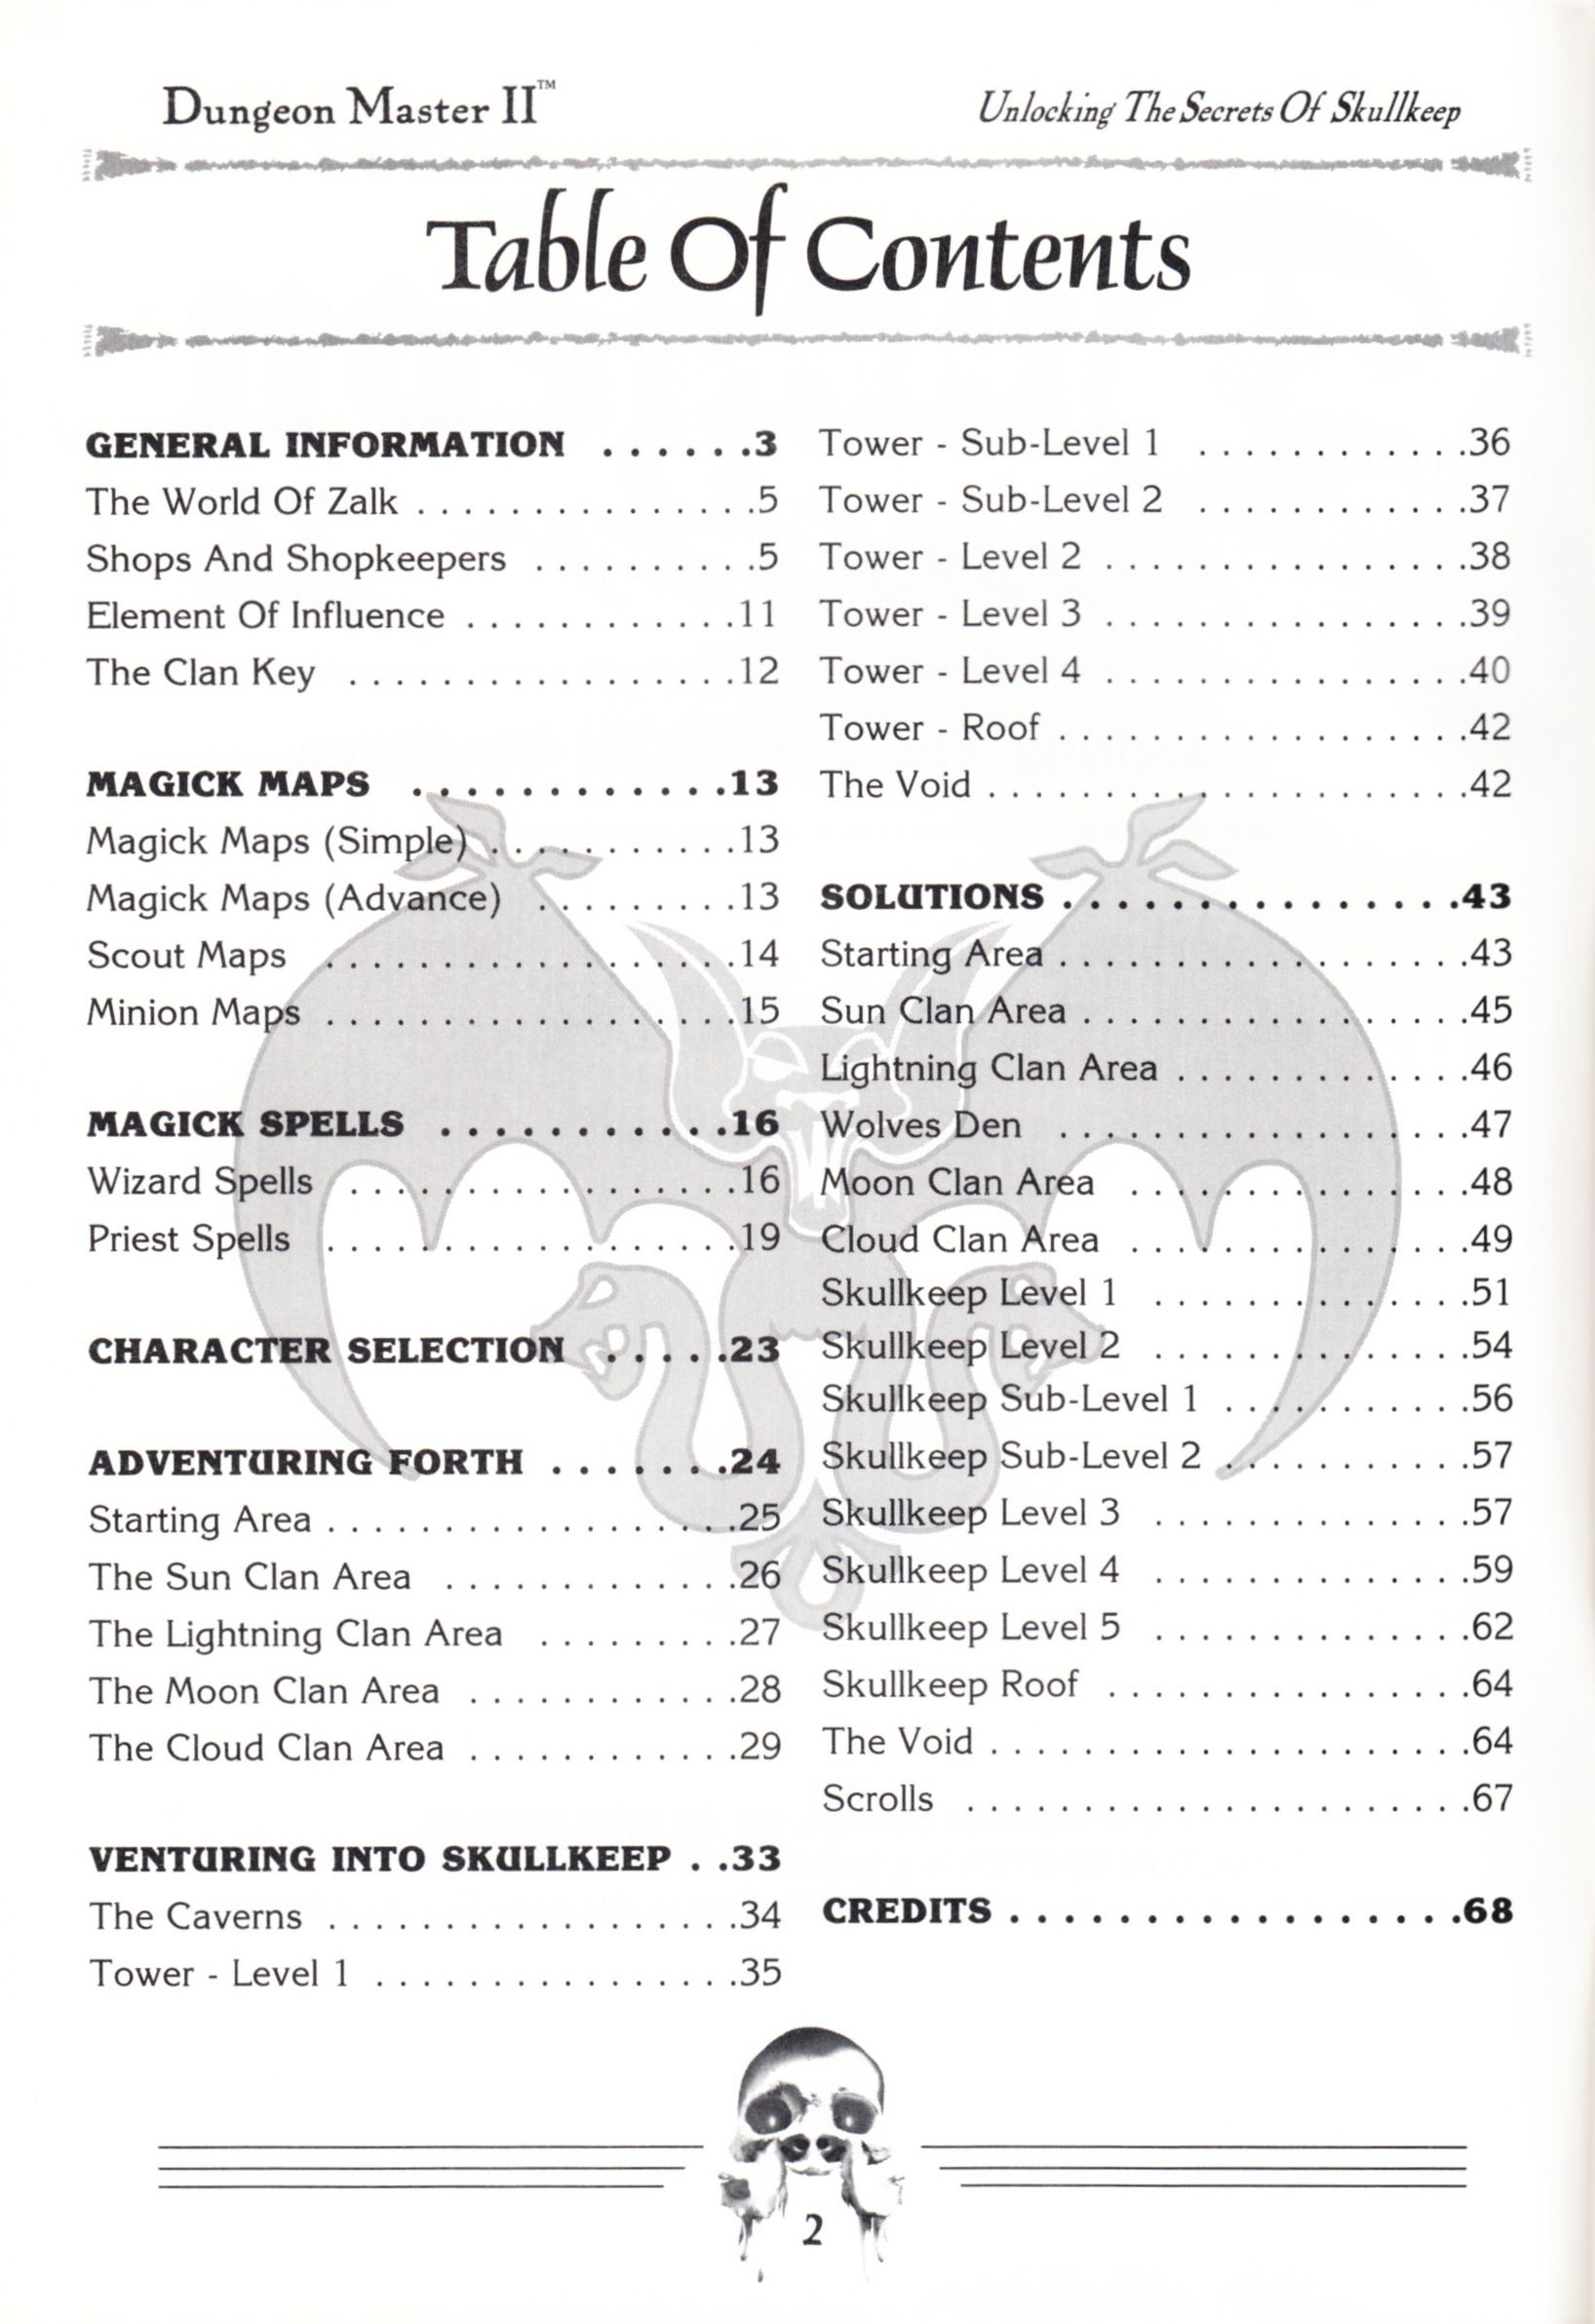 Hint Book - Dungeon Master II Clue Book - US - Page 004 - Scan